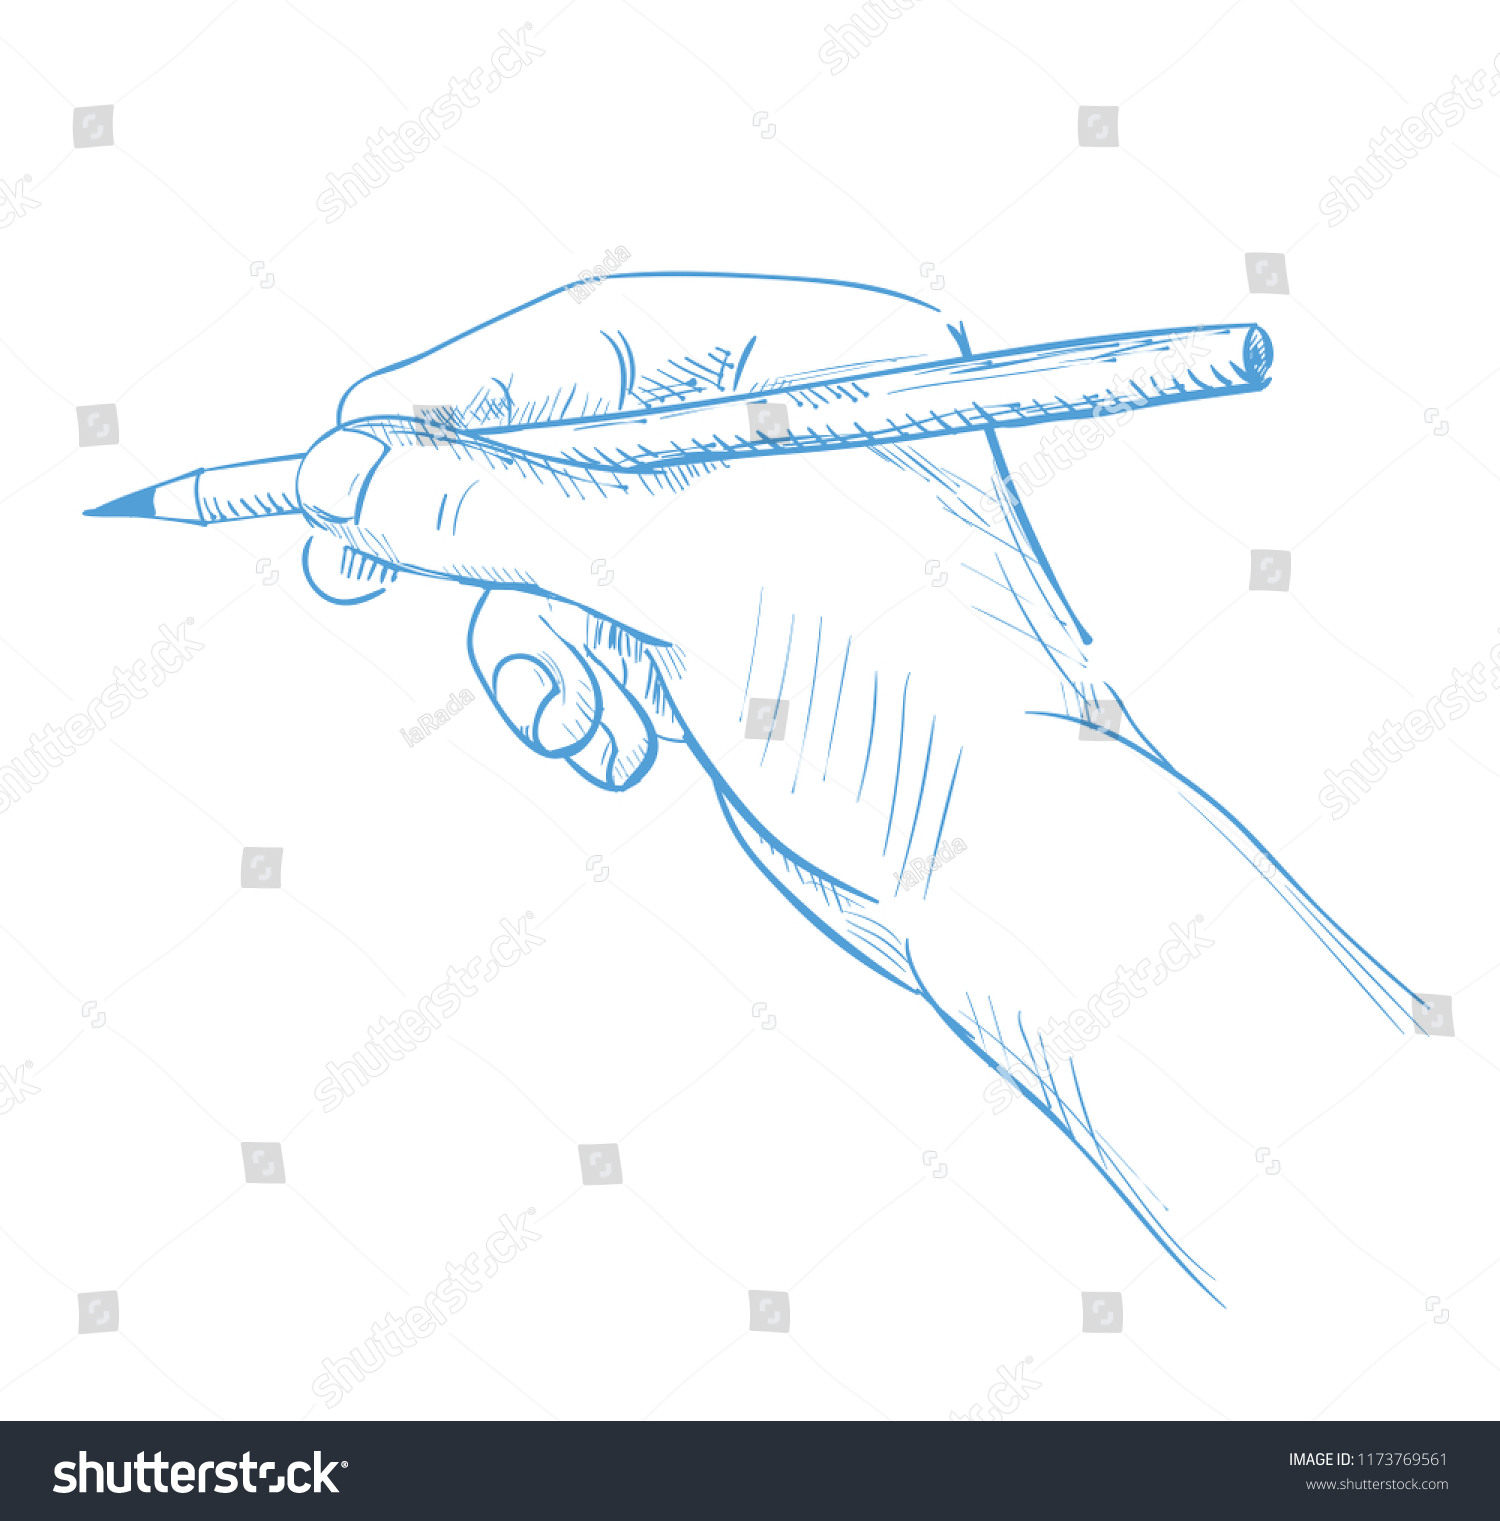 Hand with a pencil drawing sketch outline illustration